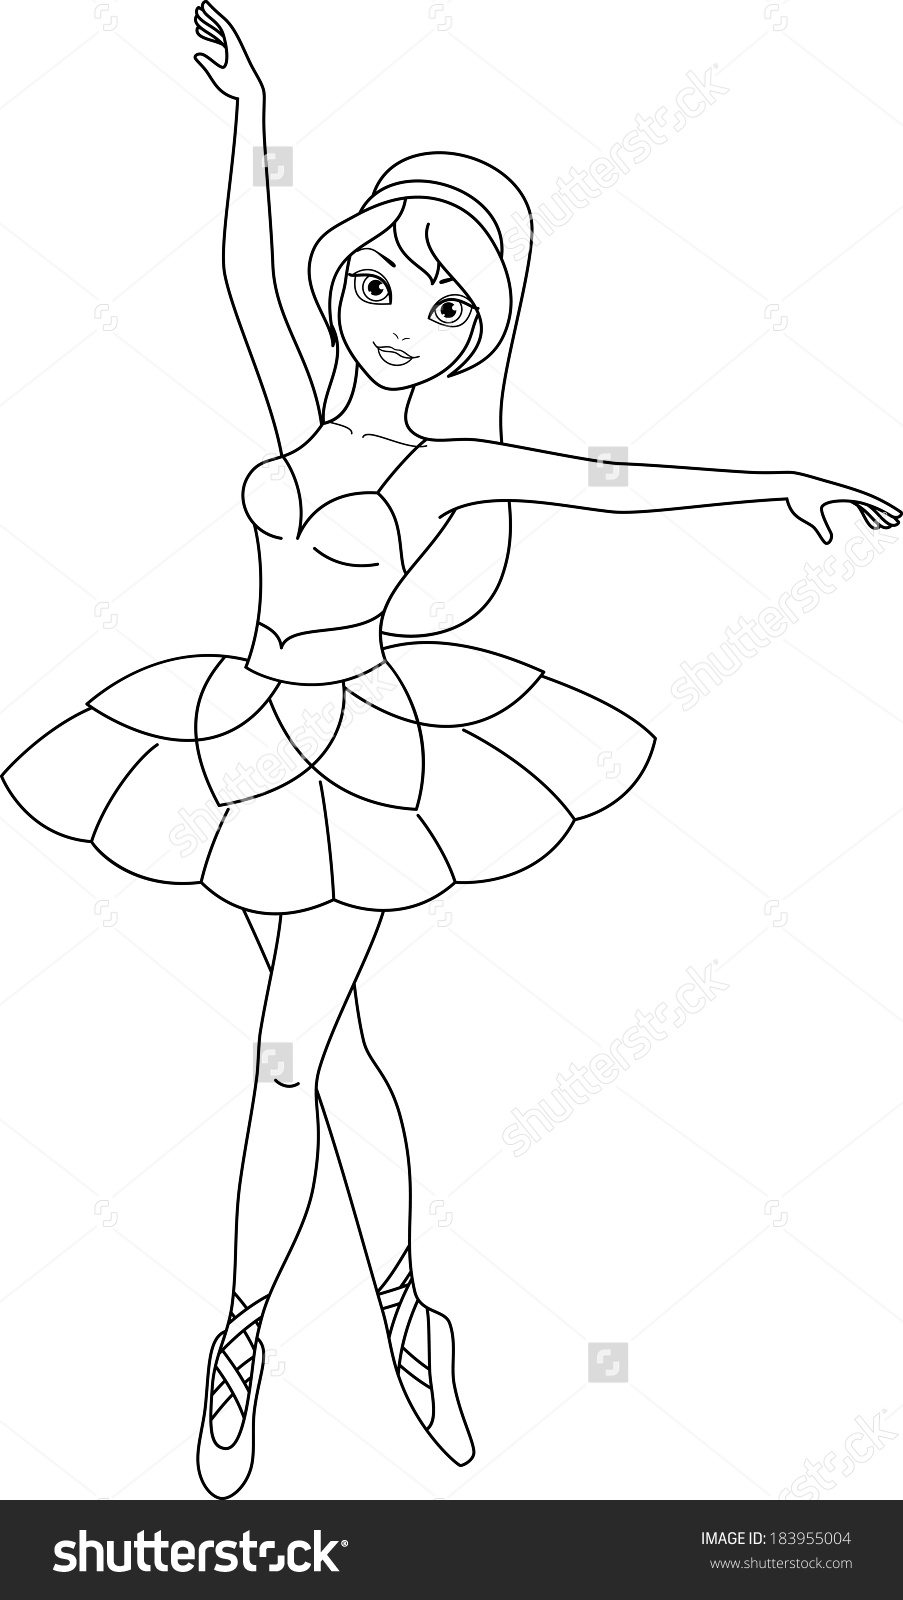 903x1600 Ballerina Coloring Pages